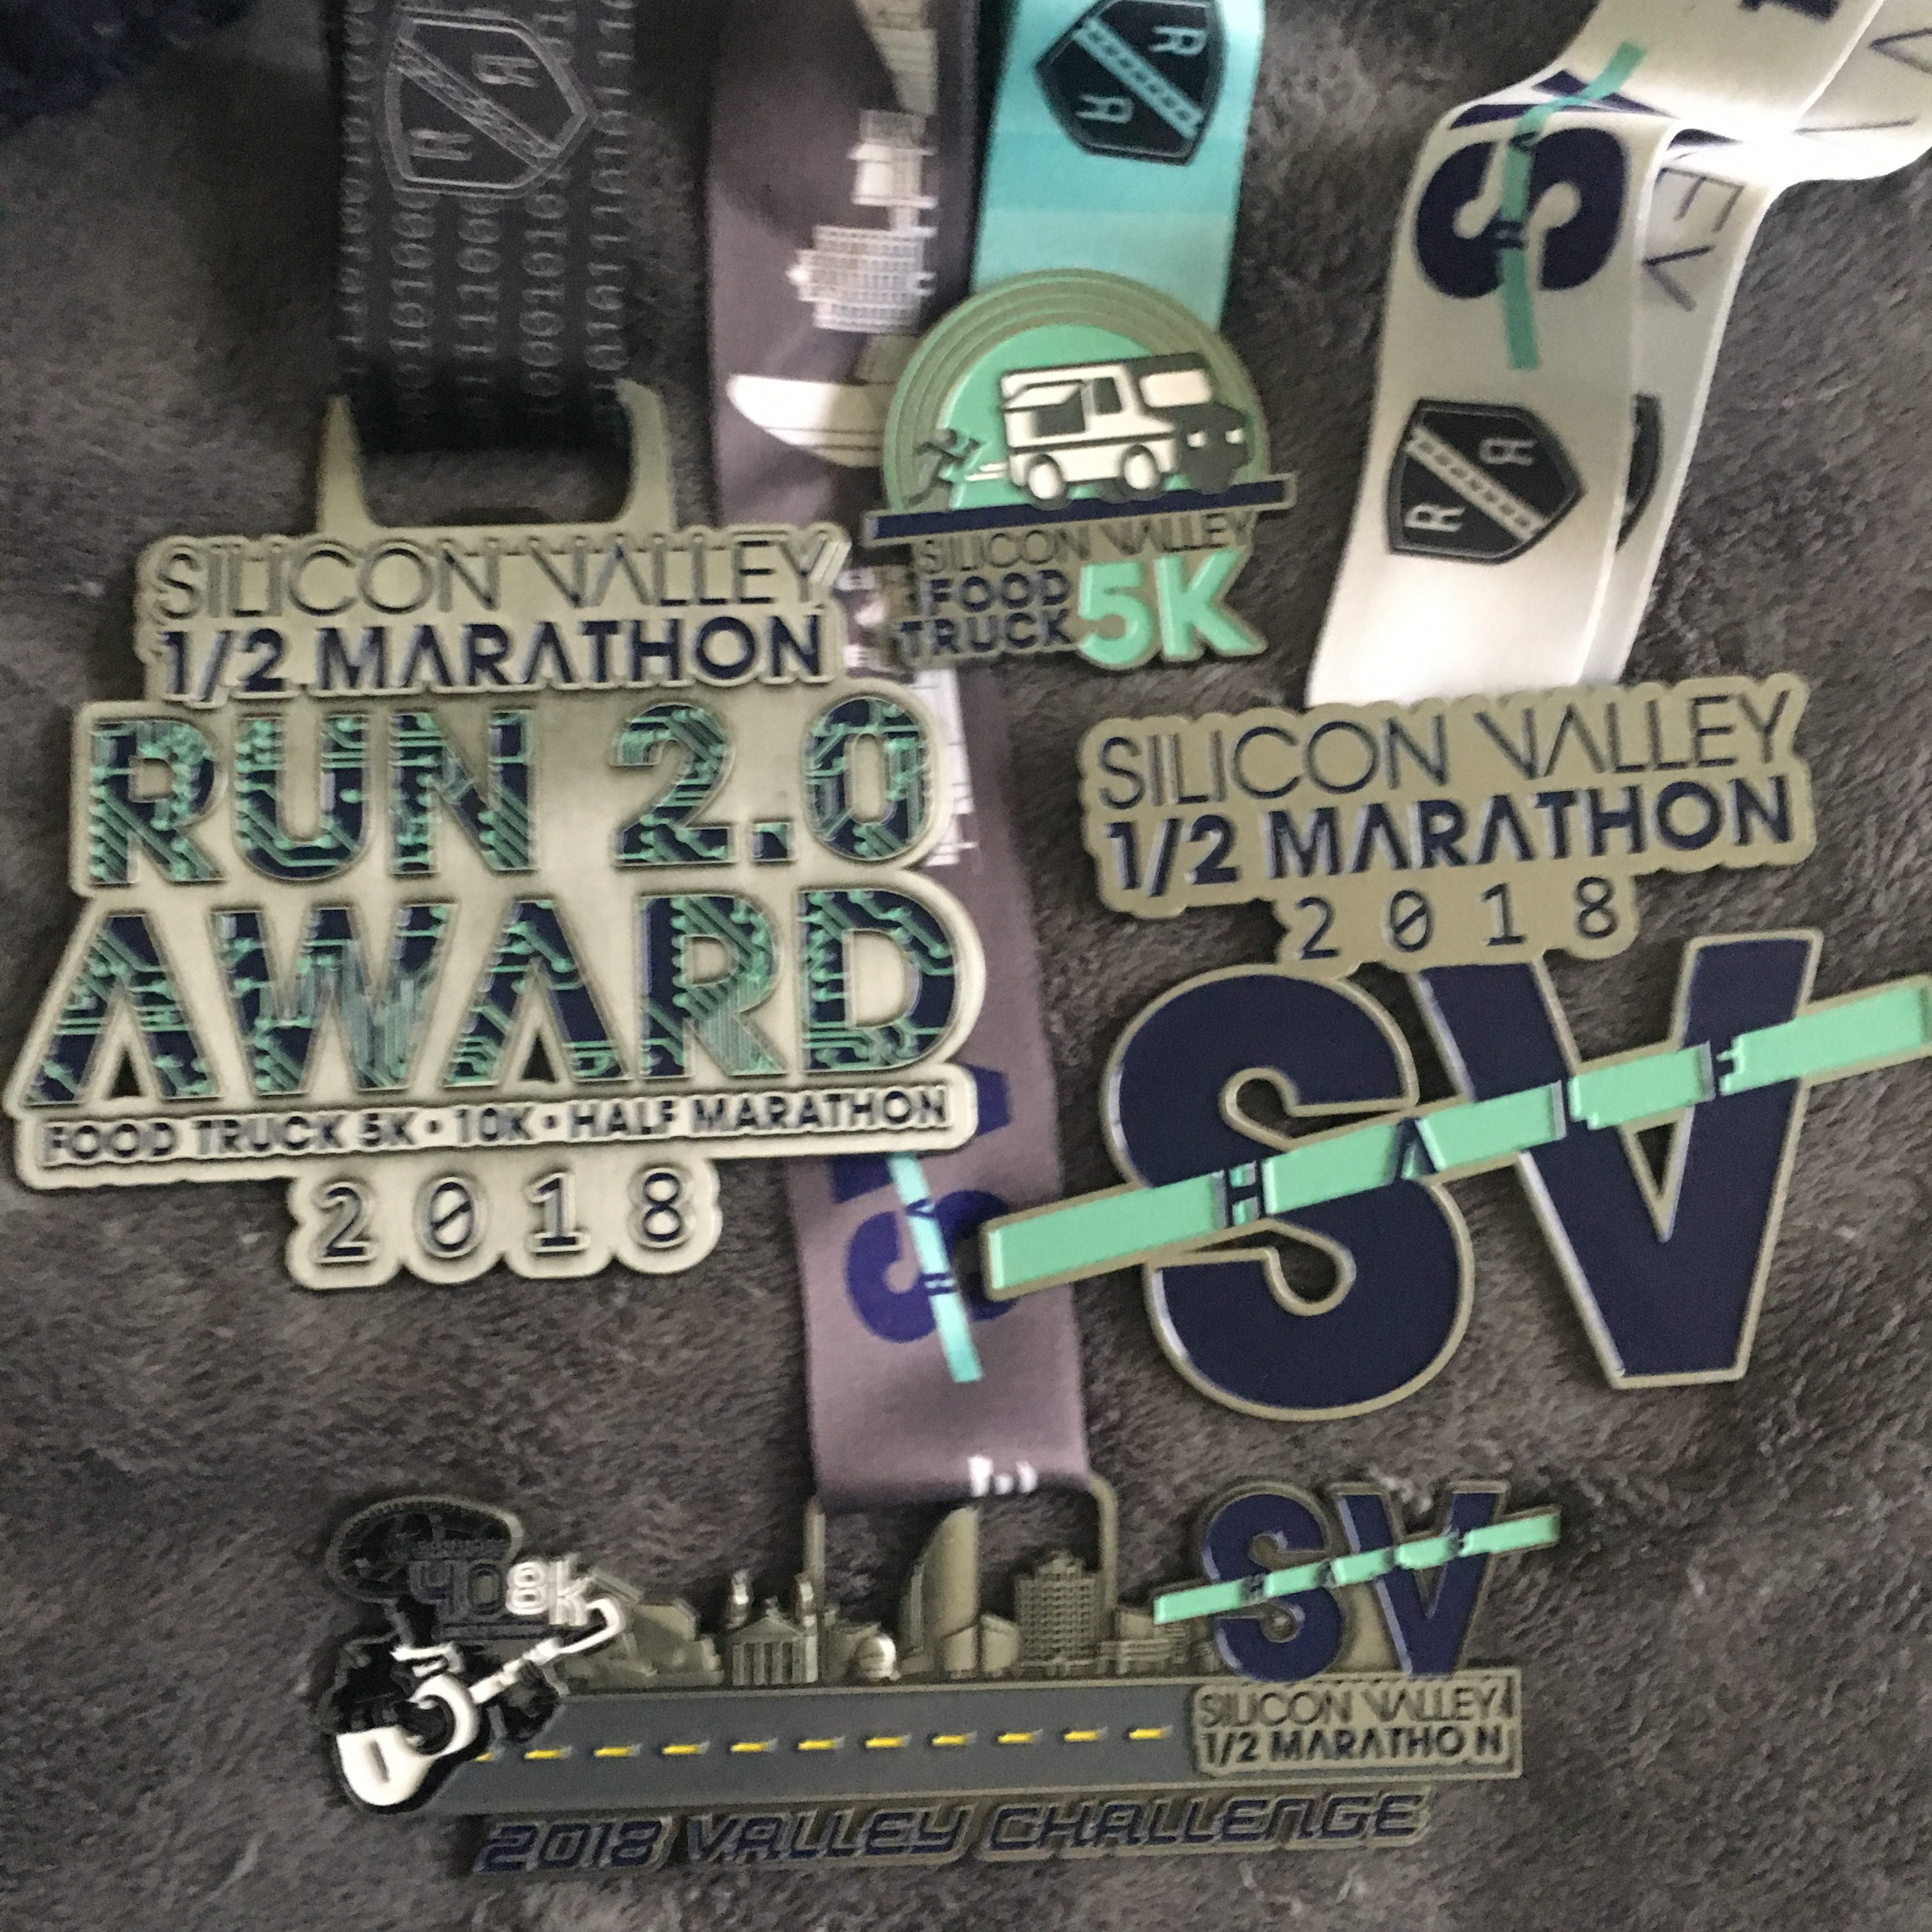 Here\'s the bling from the Inaugural Food Truck 5k and Silicon Valley Half Marathon, and a review. Have you signed up for next year?